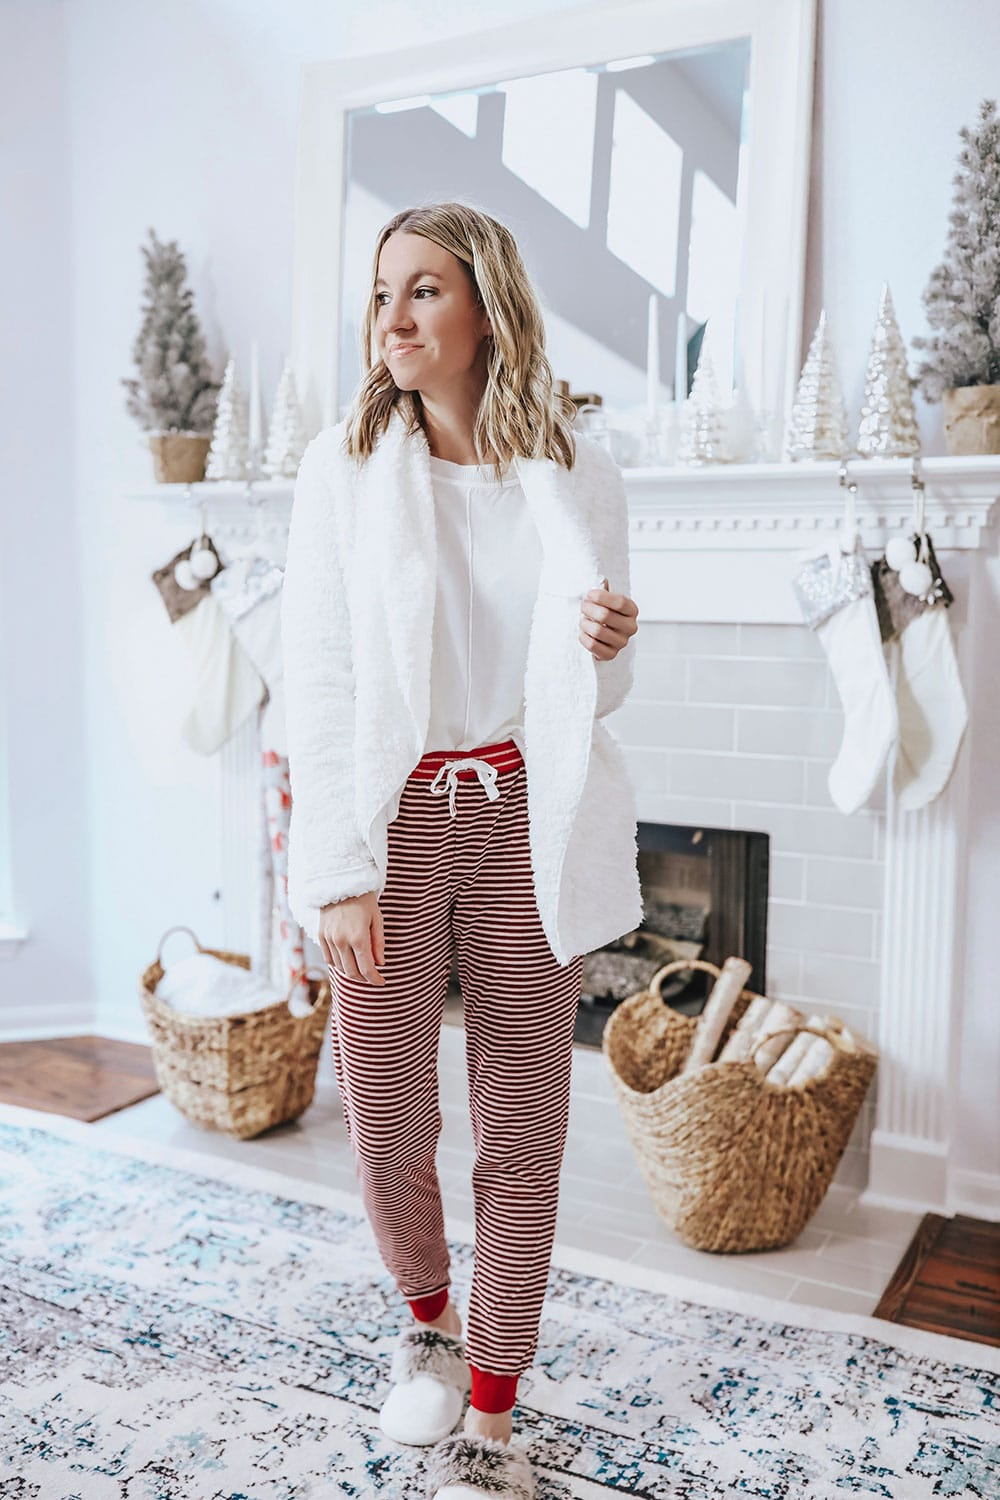 Jockey Cozy Loungewear